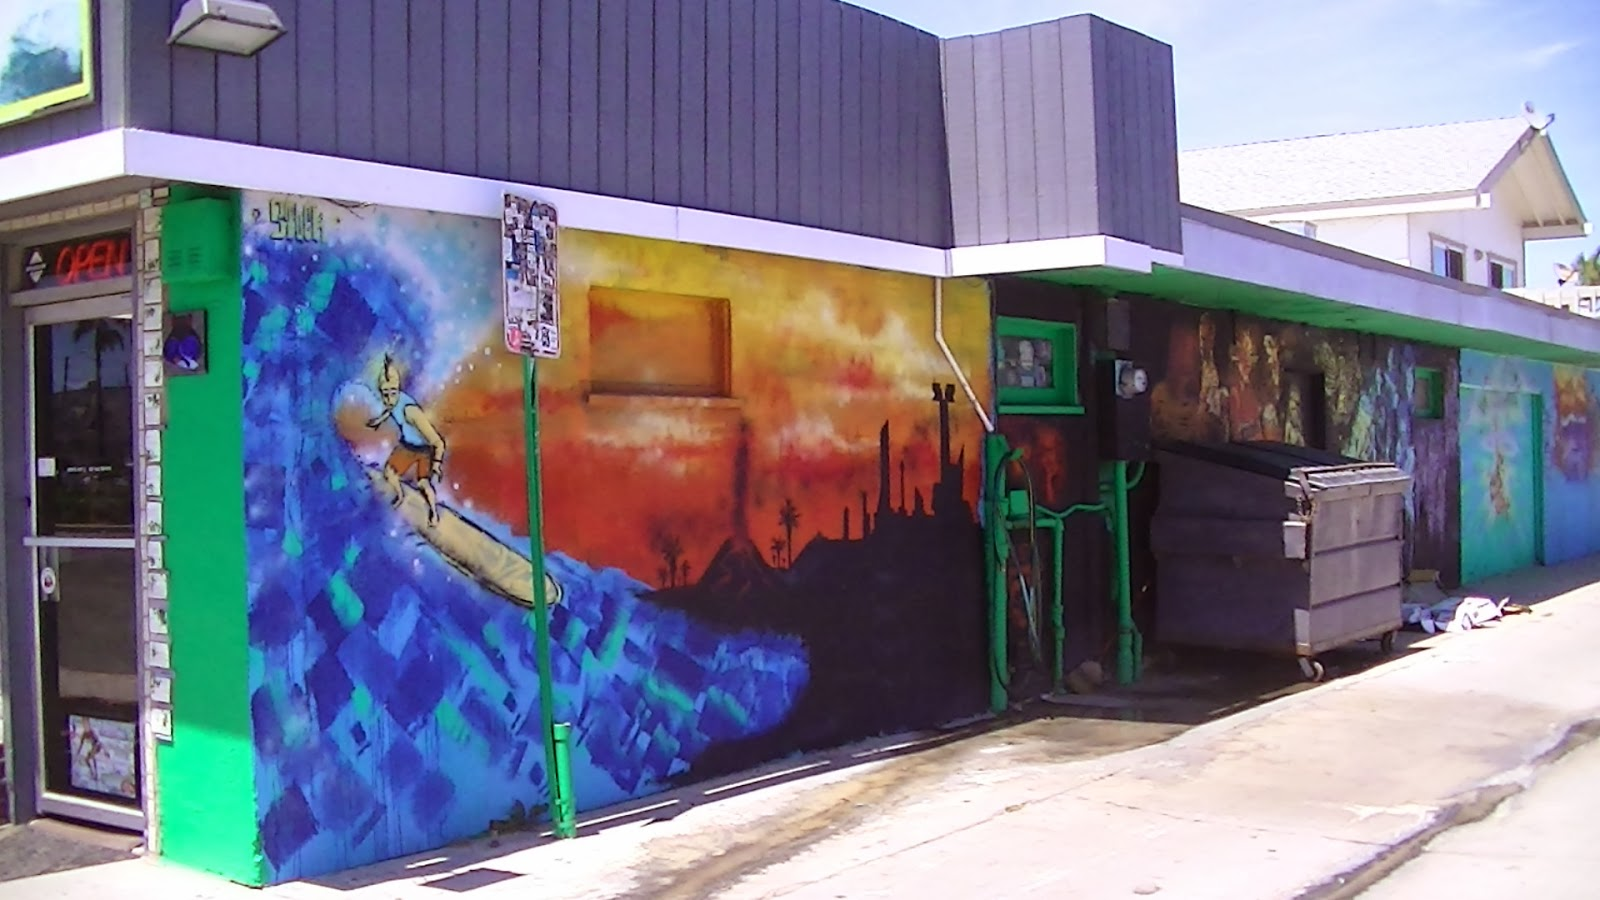 Frog House Newport Beach Part - 32: If Youu0027re In Newport Beach, You Can Visit The Frog House At 6908 West Coast  Highway. Store Hours Are 9 A.m.-7 P.m. Monday-Friday, 8 A.m.-6 P.m.  Saturday, ...